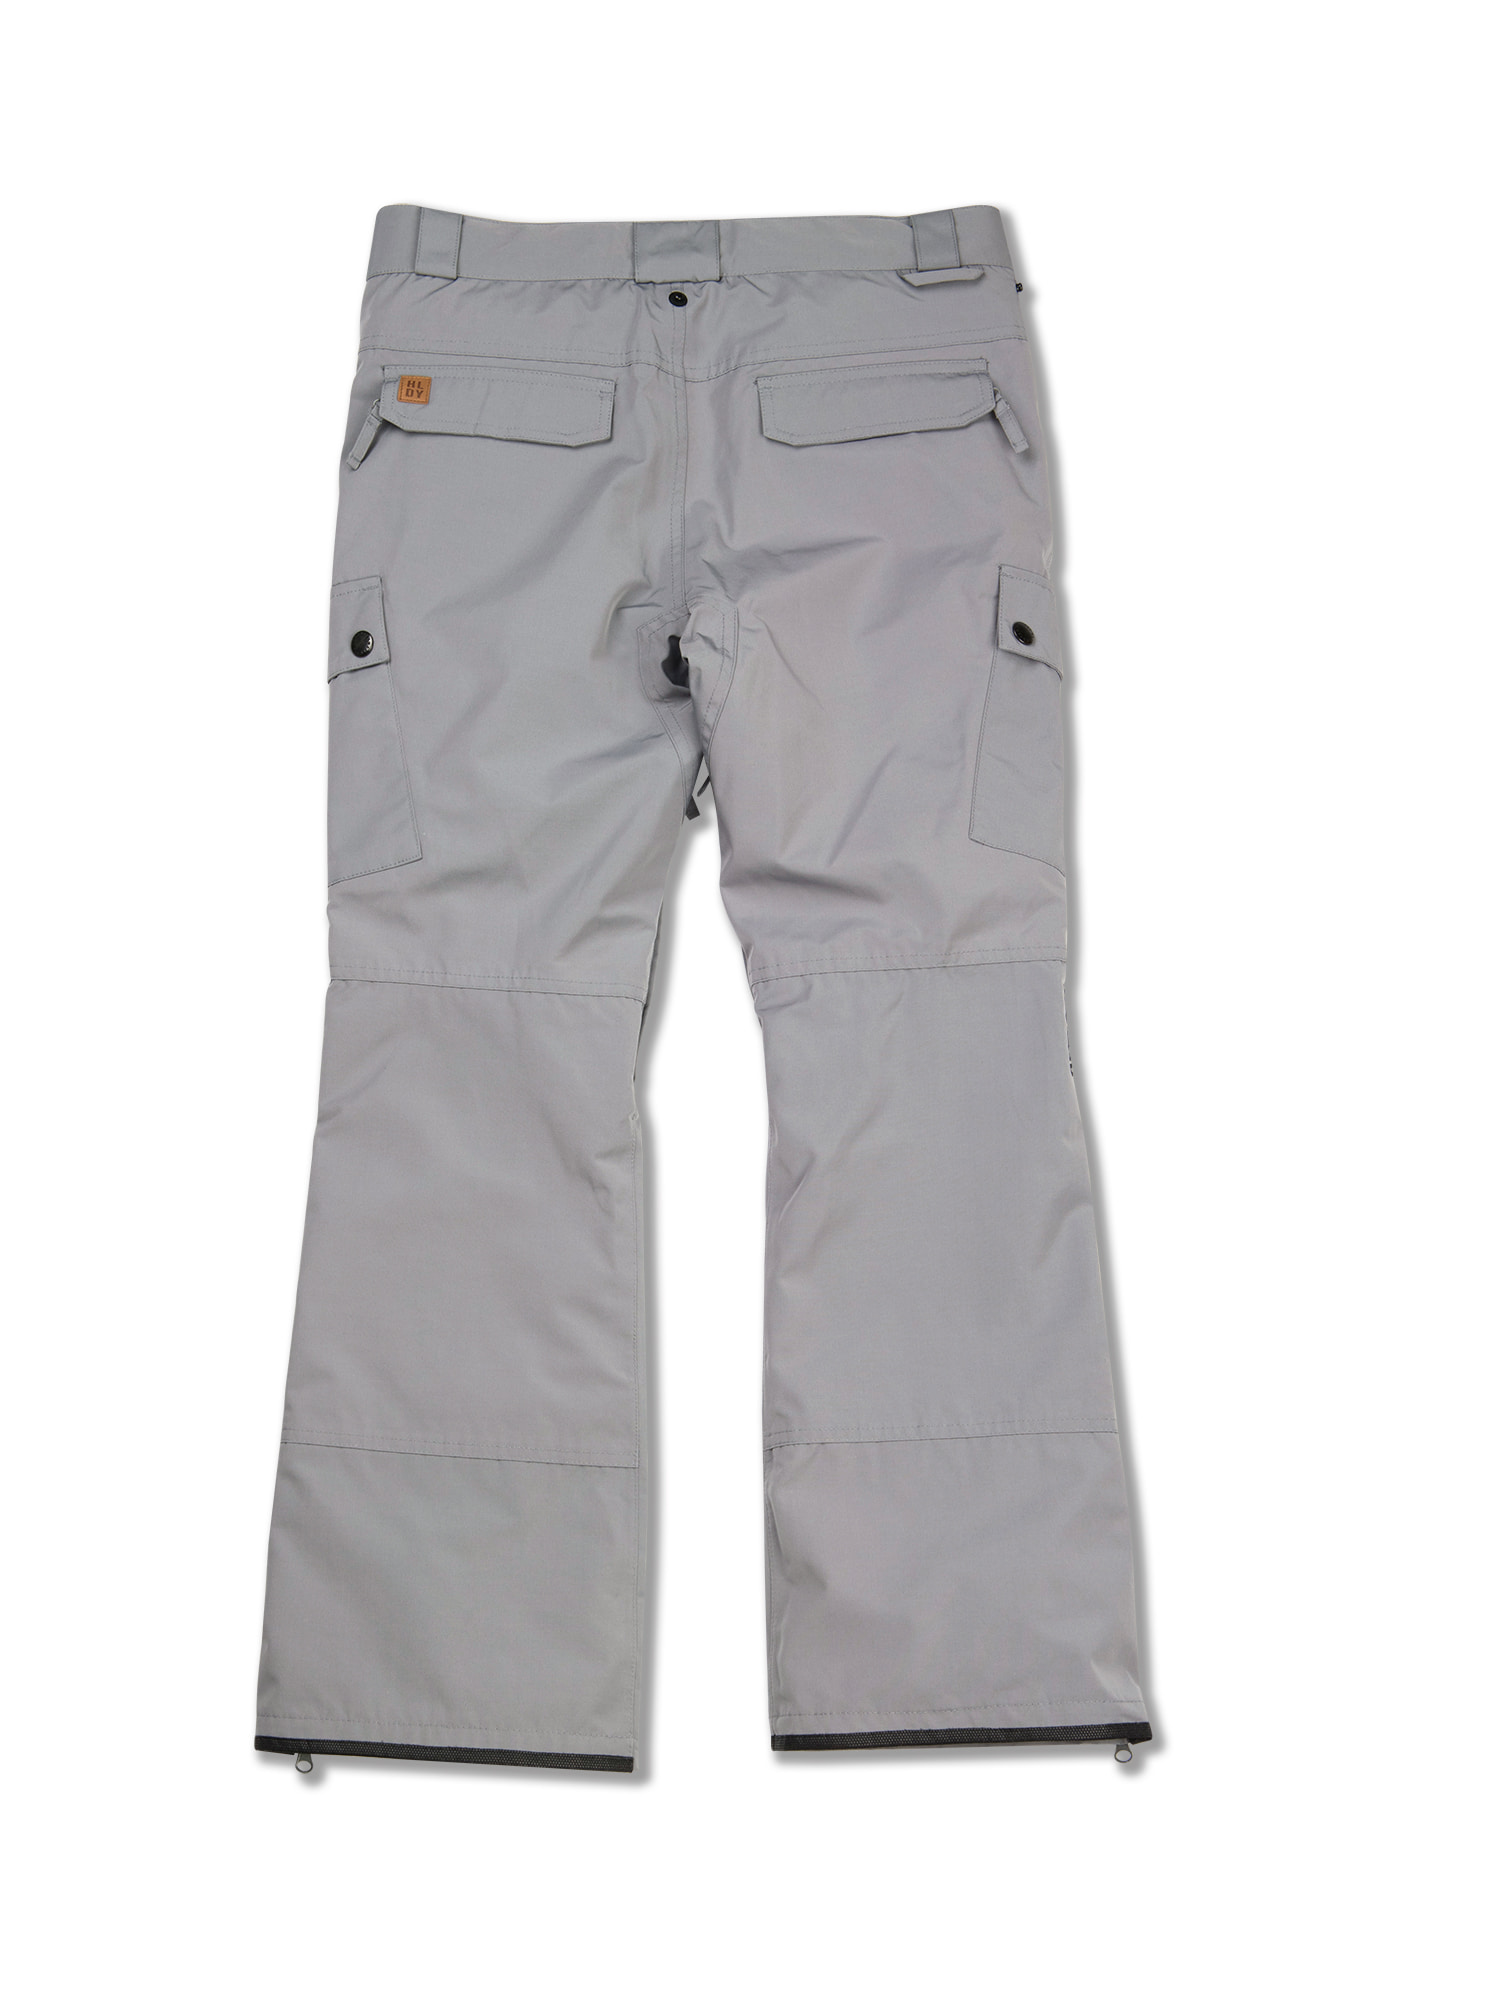 CHATTER pants - gray